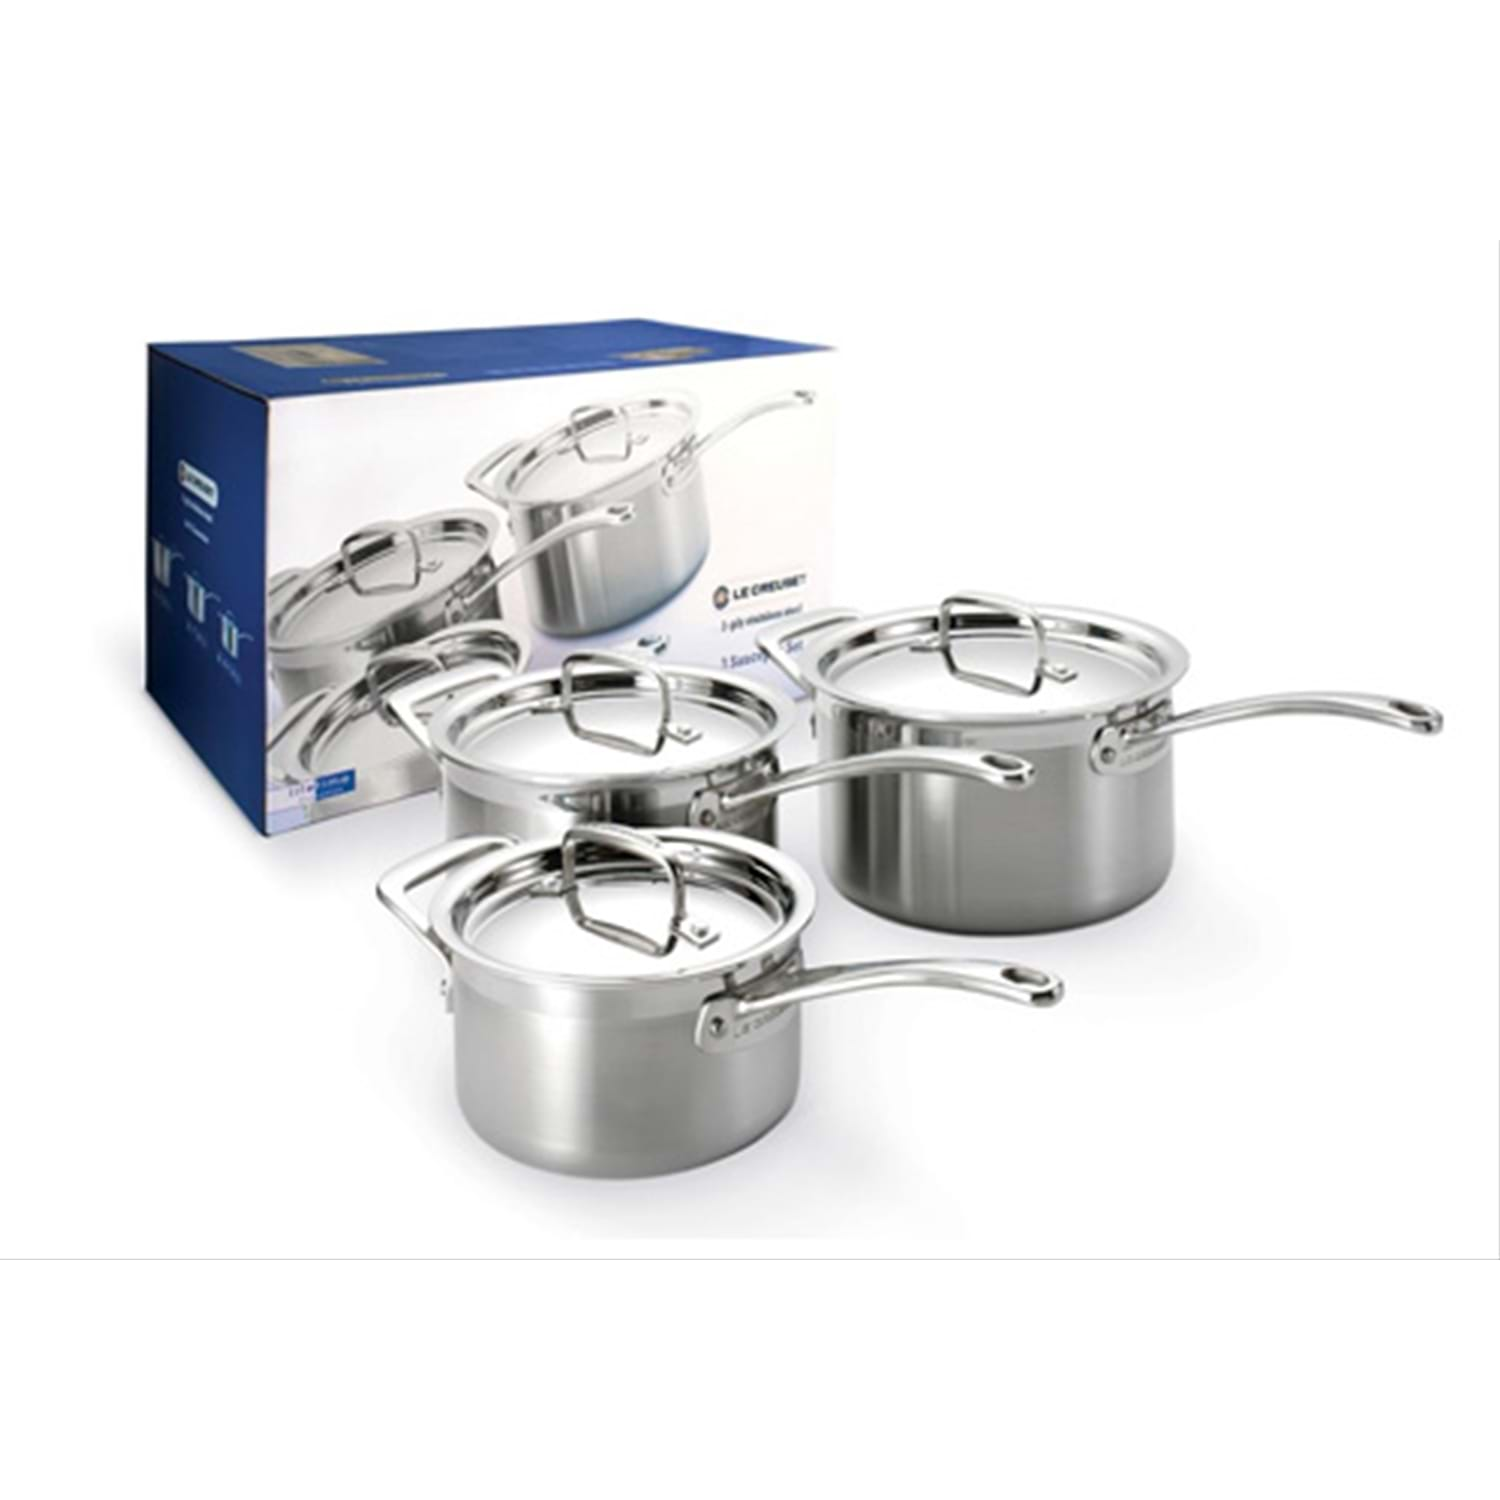 Image of Le Creuset 3-ply Stainless Steel 3 Piece Saucepan Set